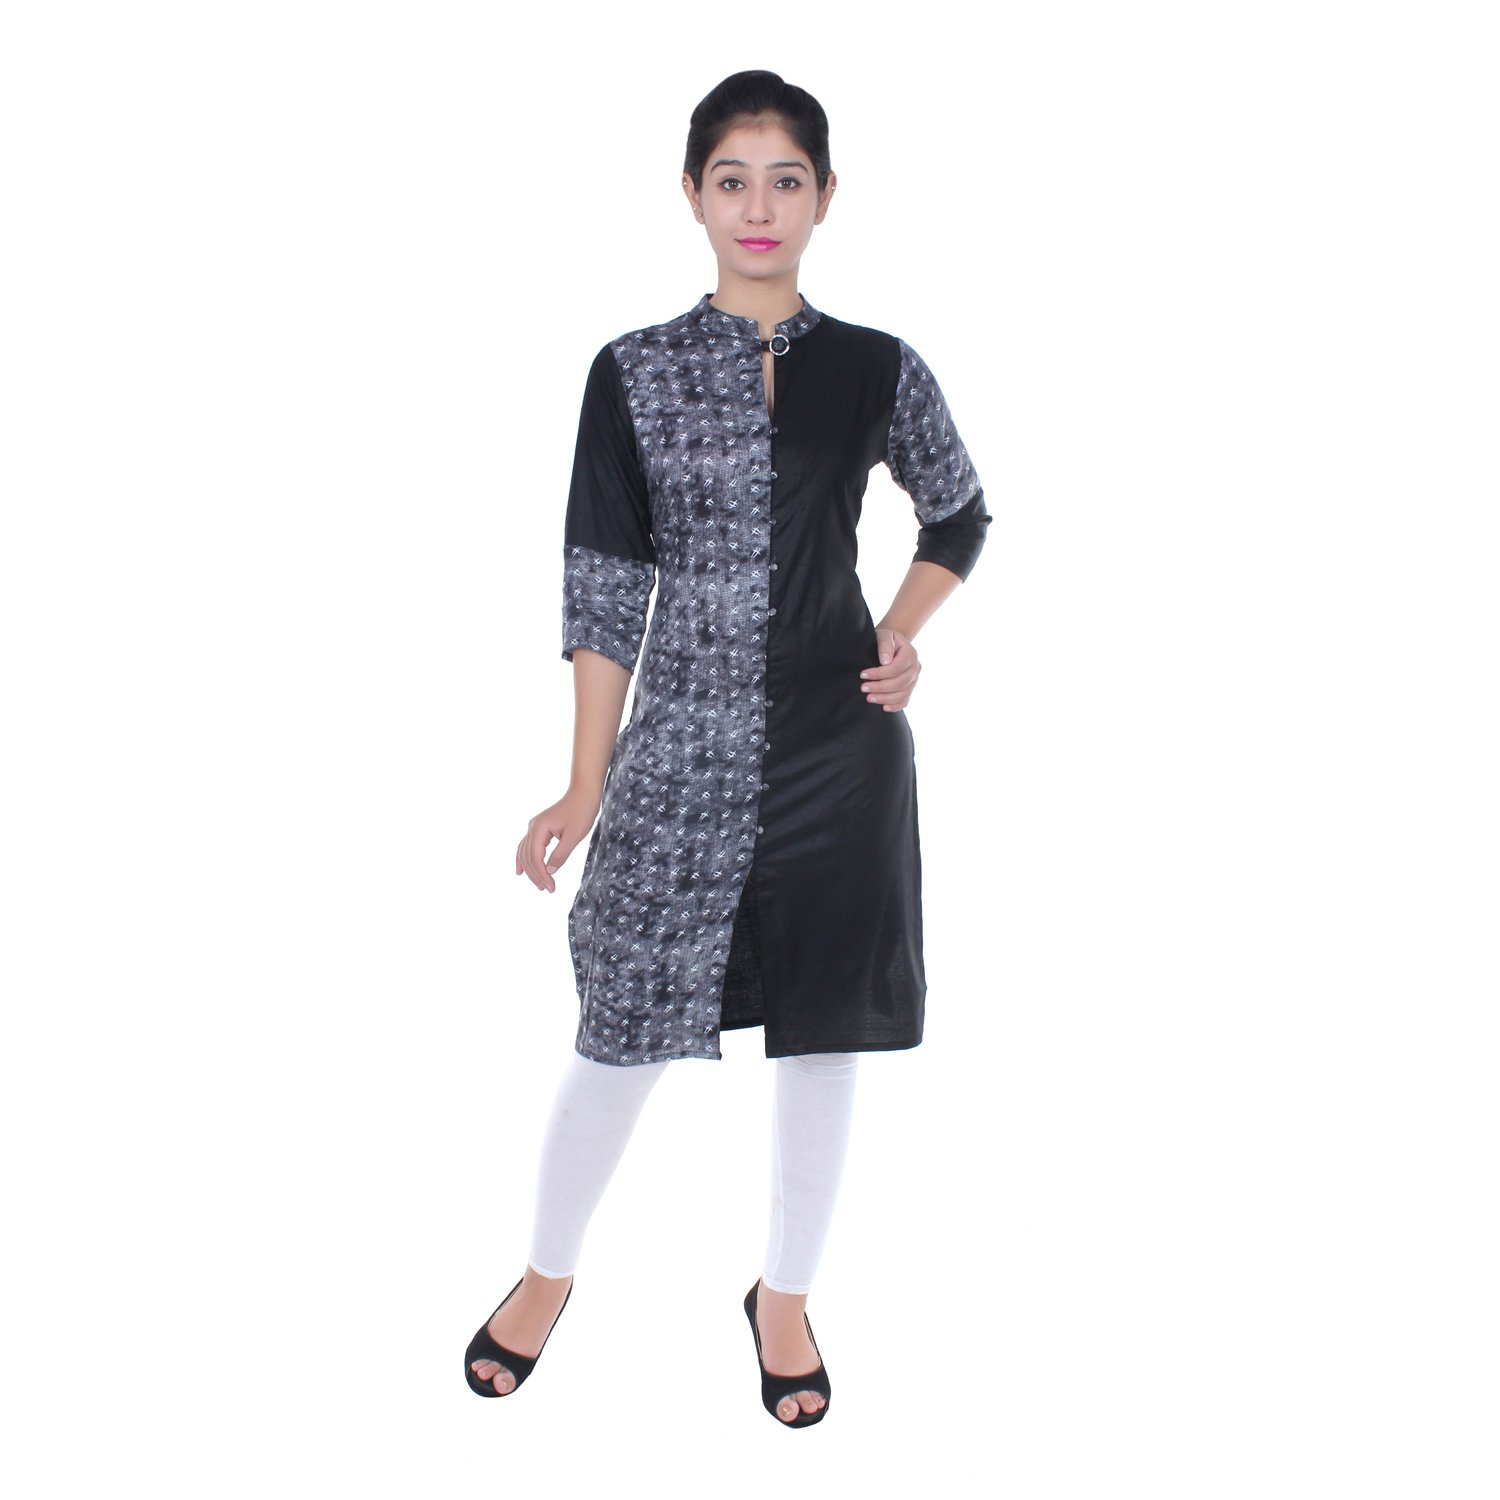 Chichi Indian Women Kurta Kurti 3/4 Sleeve Medium Size Plain with One Side Printed Straight Black-White Top by CHI (Image #6)